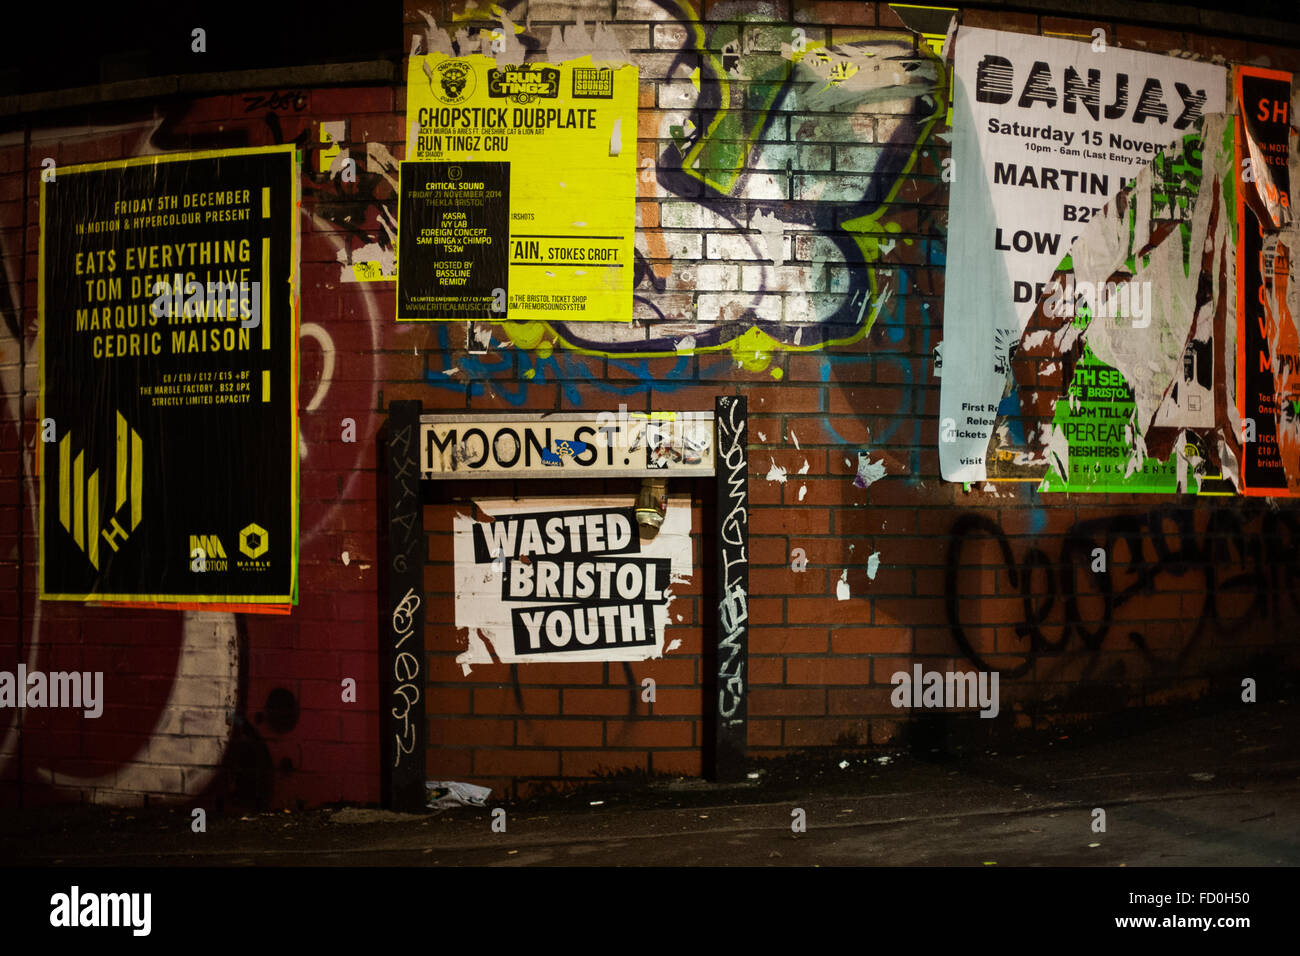 Music concert posters at night in Stokes Croft, Bristol, England - Stock Image